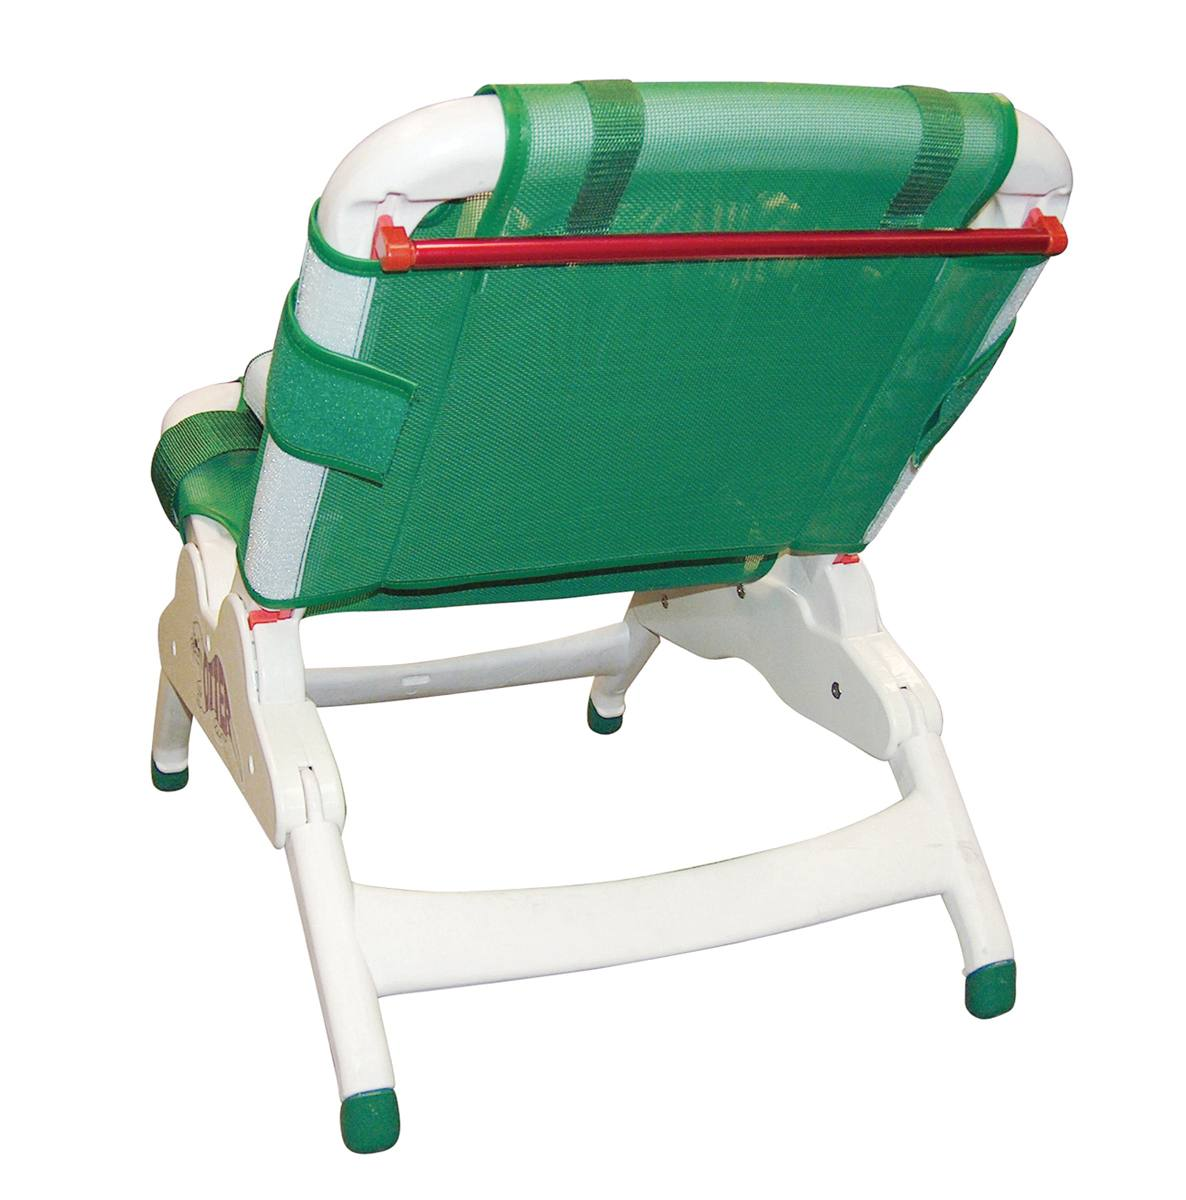 Wenzelite Rehab OTTER PEDIATRIC BATHING SYSTEM from Perkins Medical ...